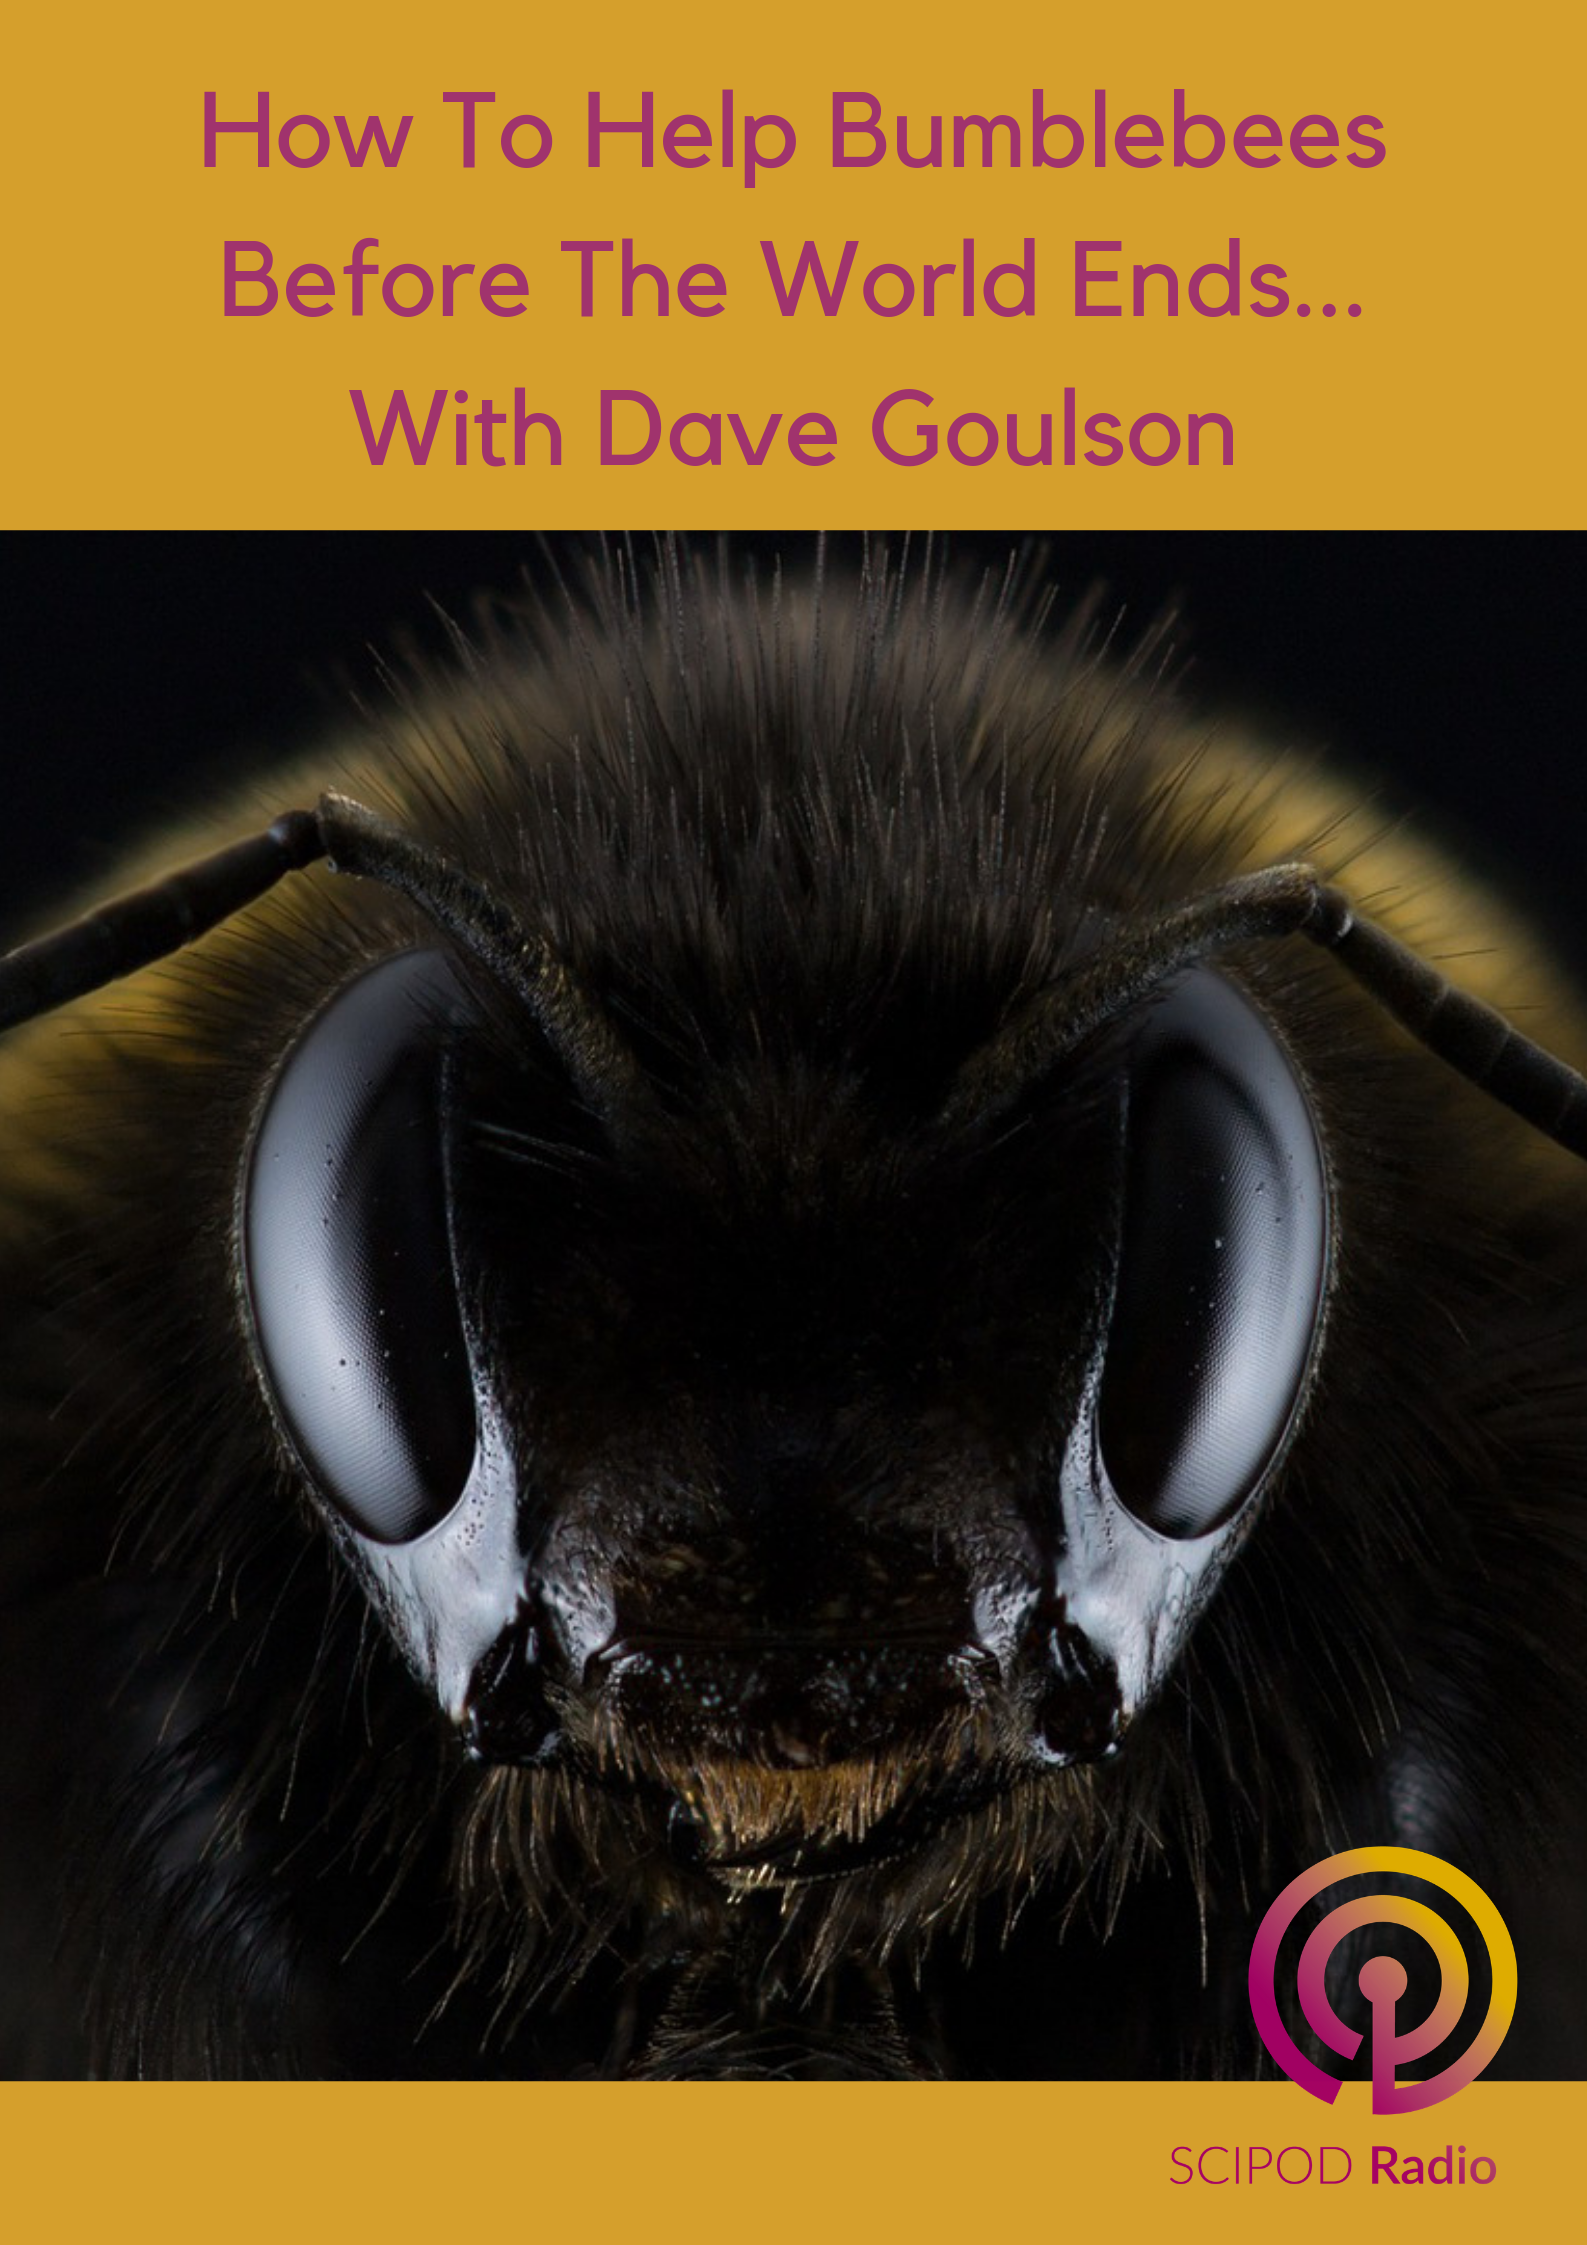 How To Help Bumblebees Before The World Ends… With Dave Goulson